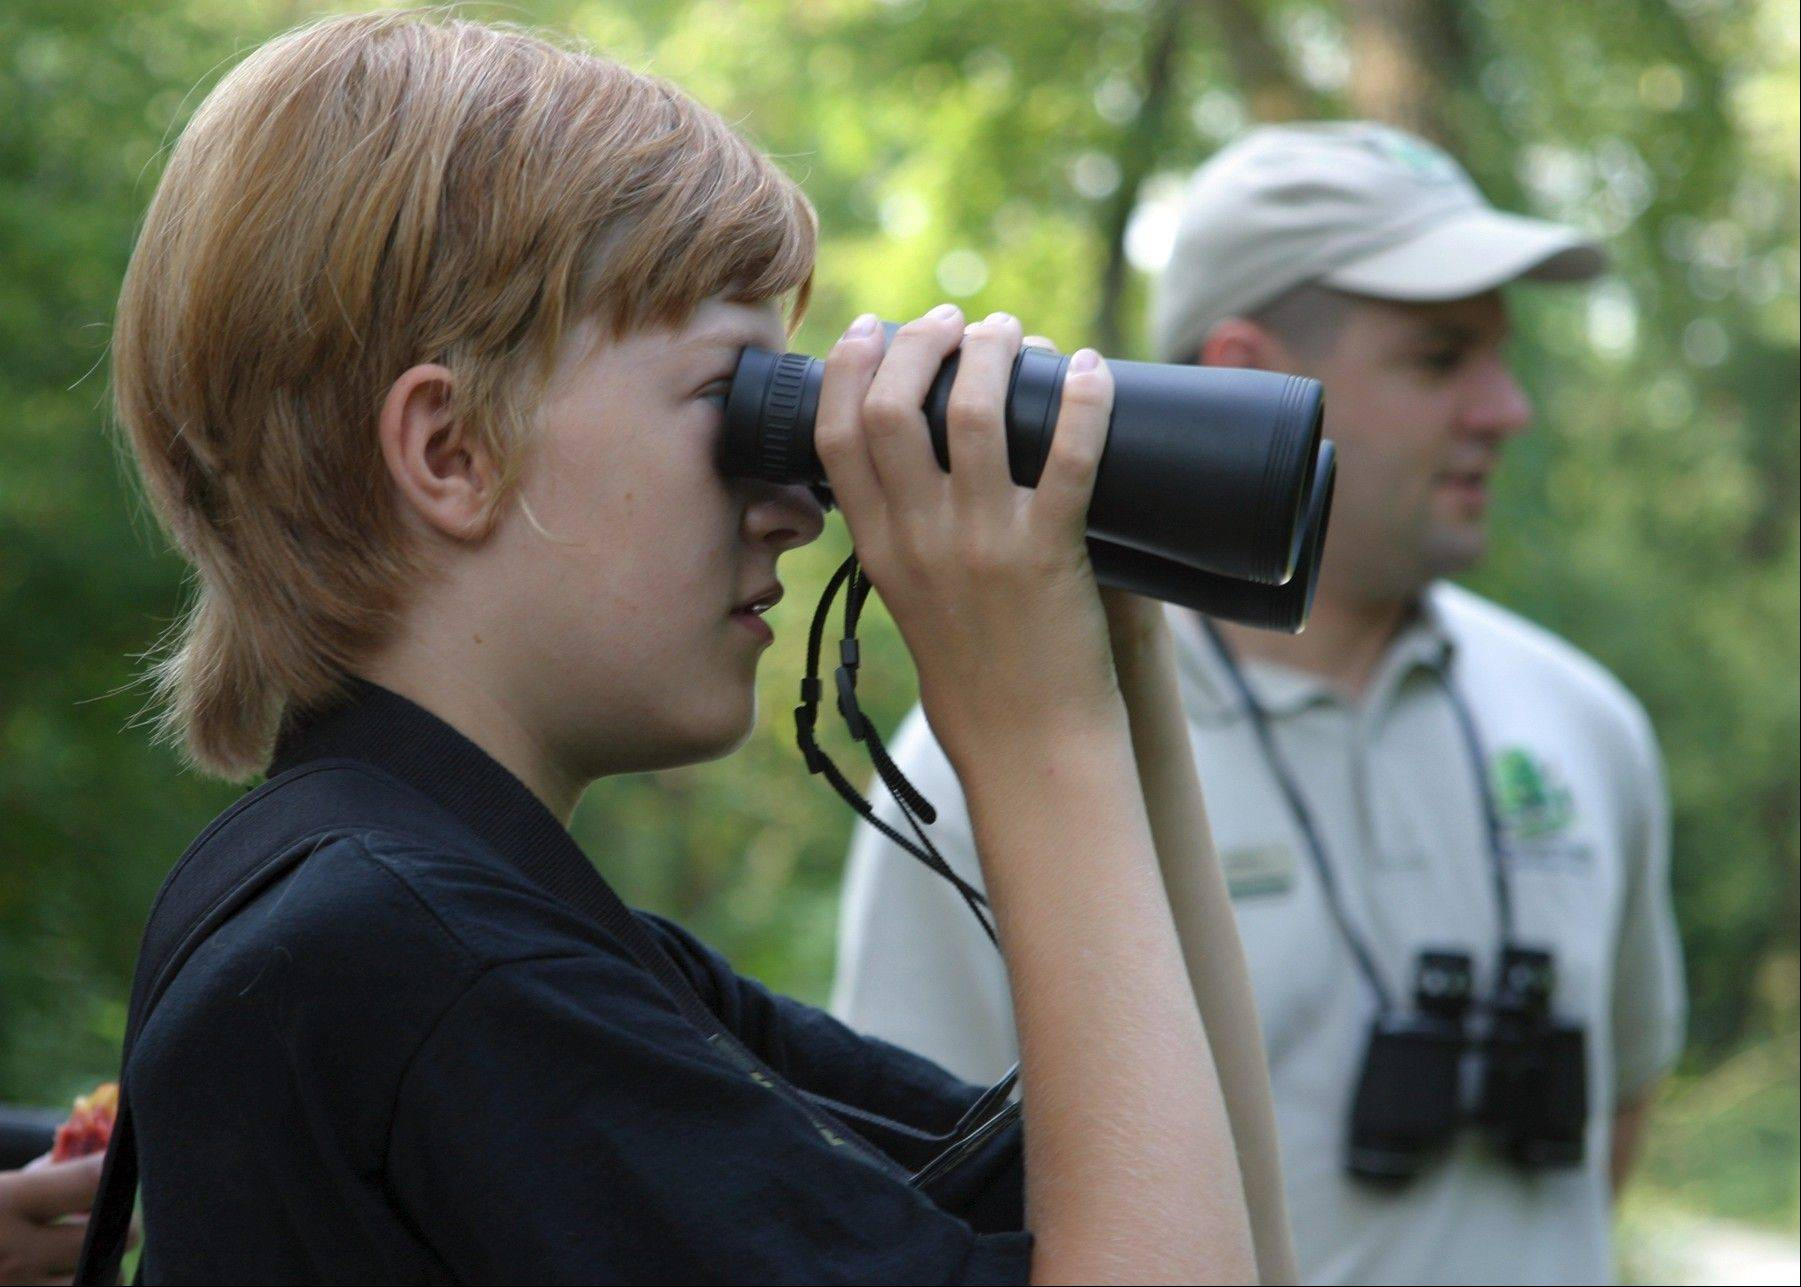 Bird walks are part of the fun at the International Migratory Bird Day Celebration at the Willowbrook Wildlife Center in Glen Ellyn.